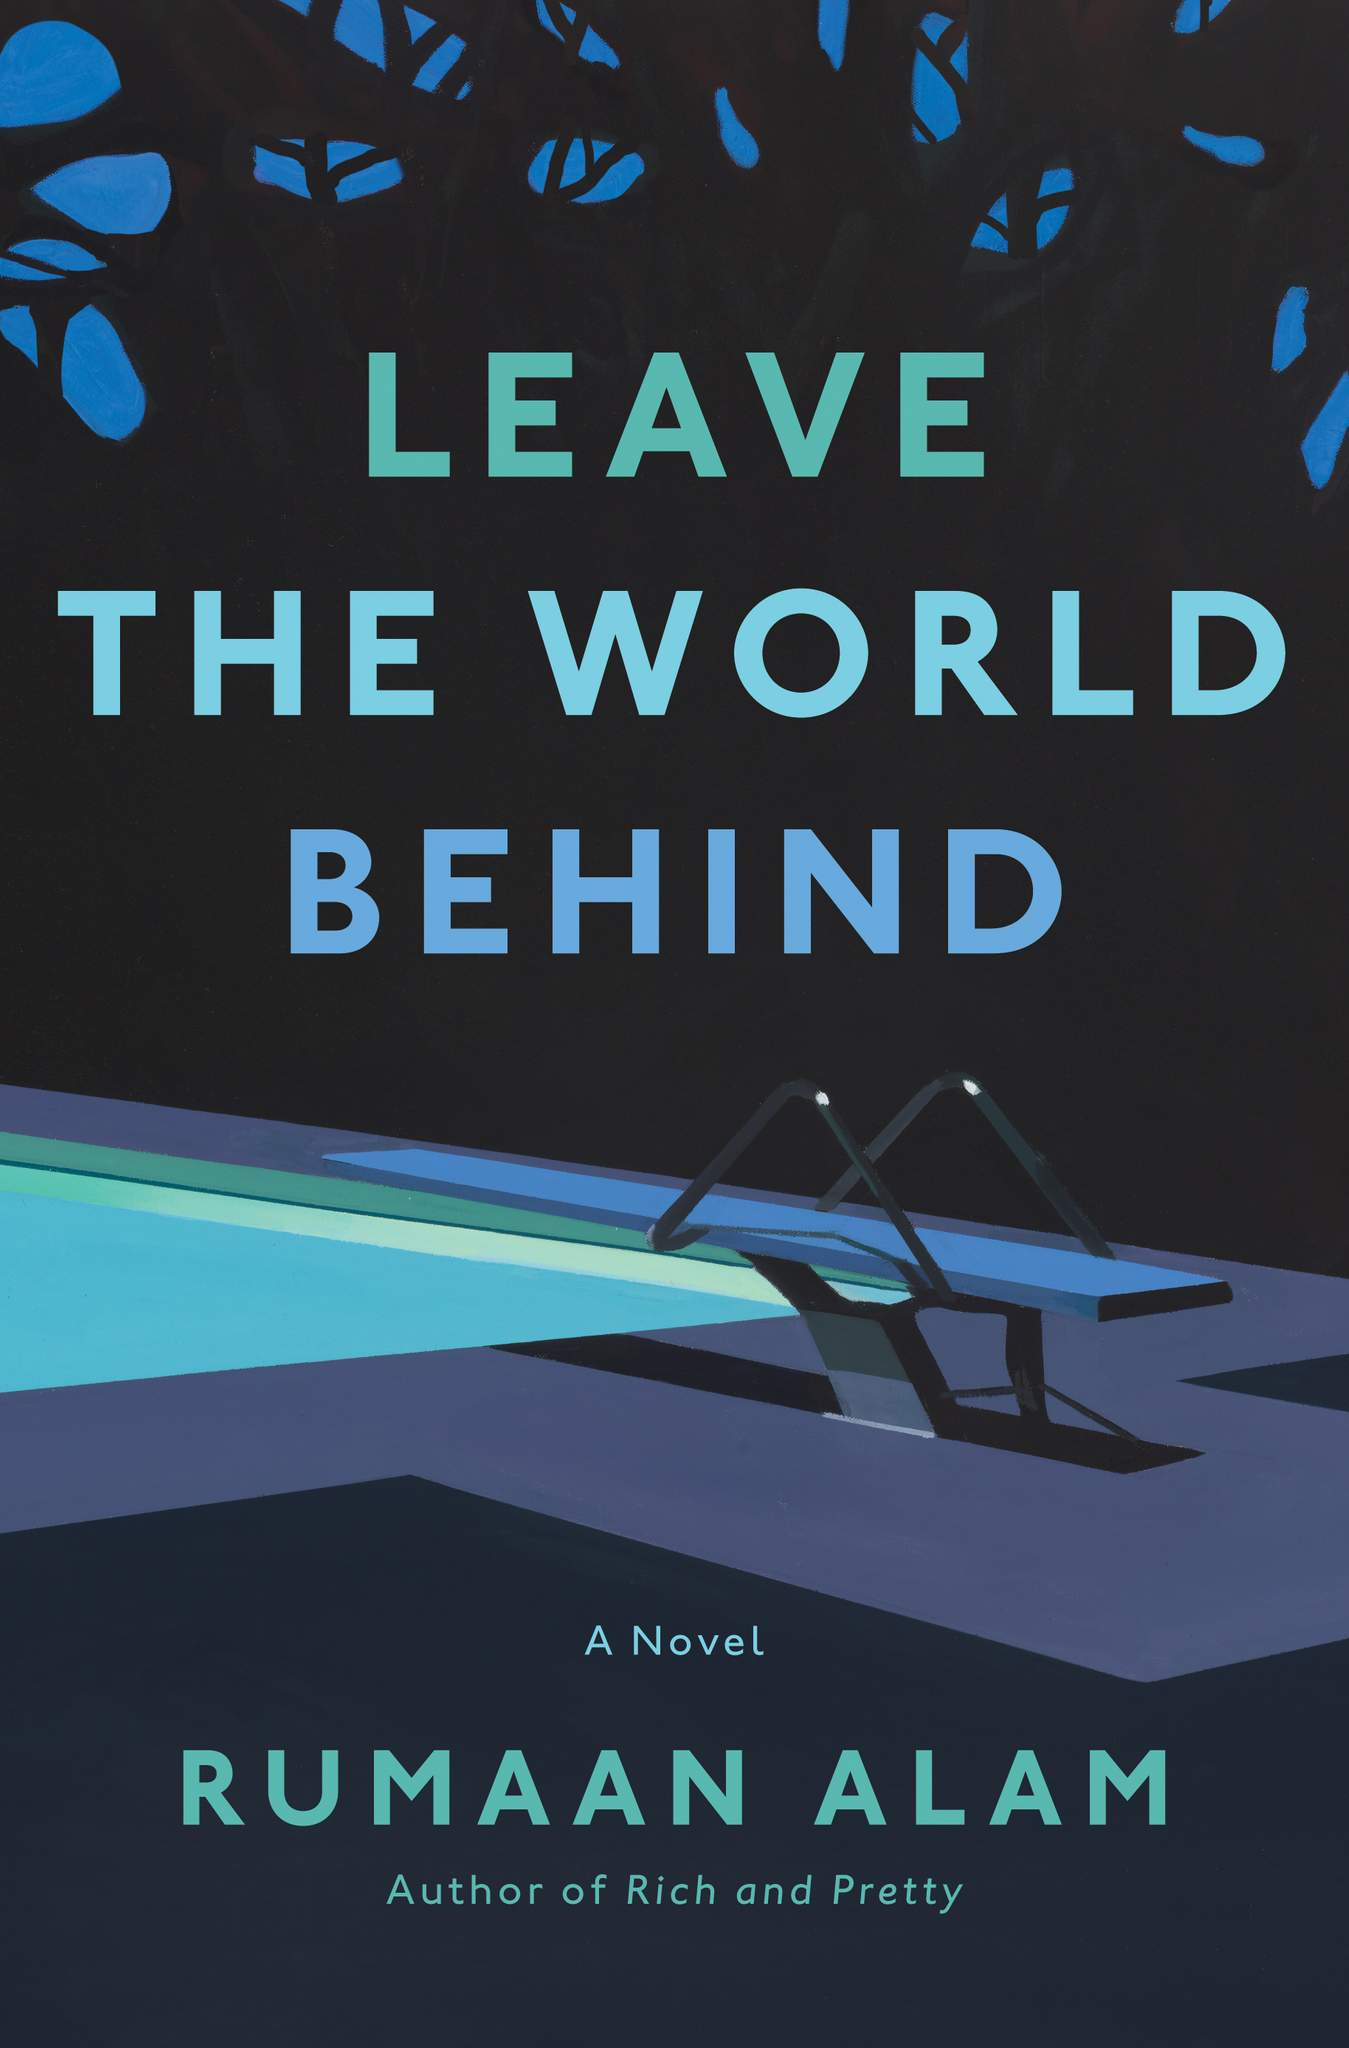 leaveworldbehind_cover.jpg